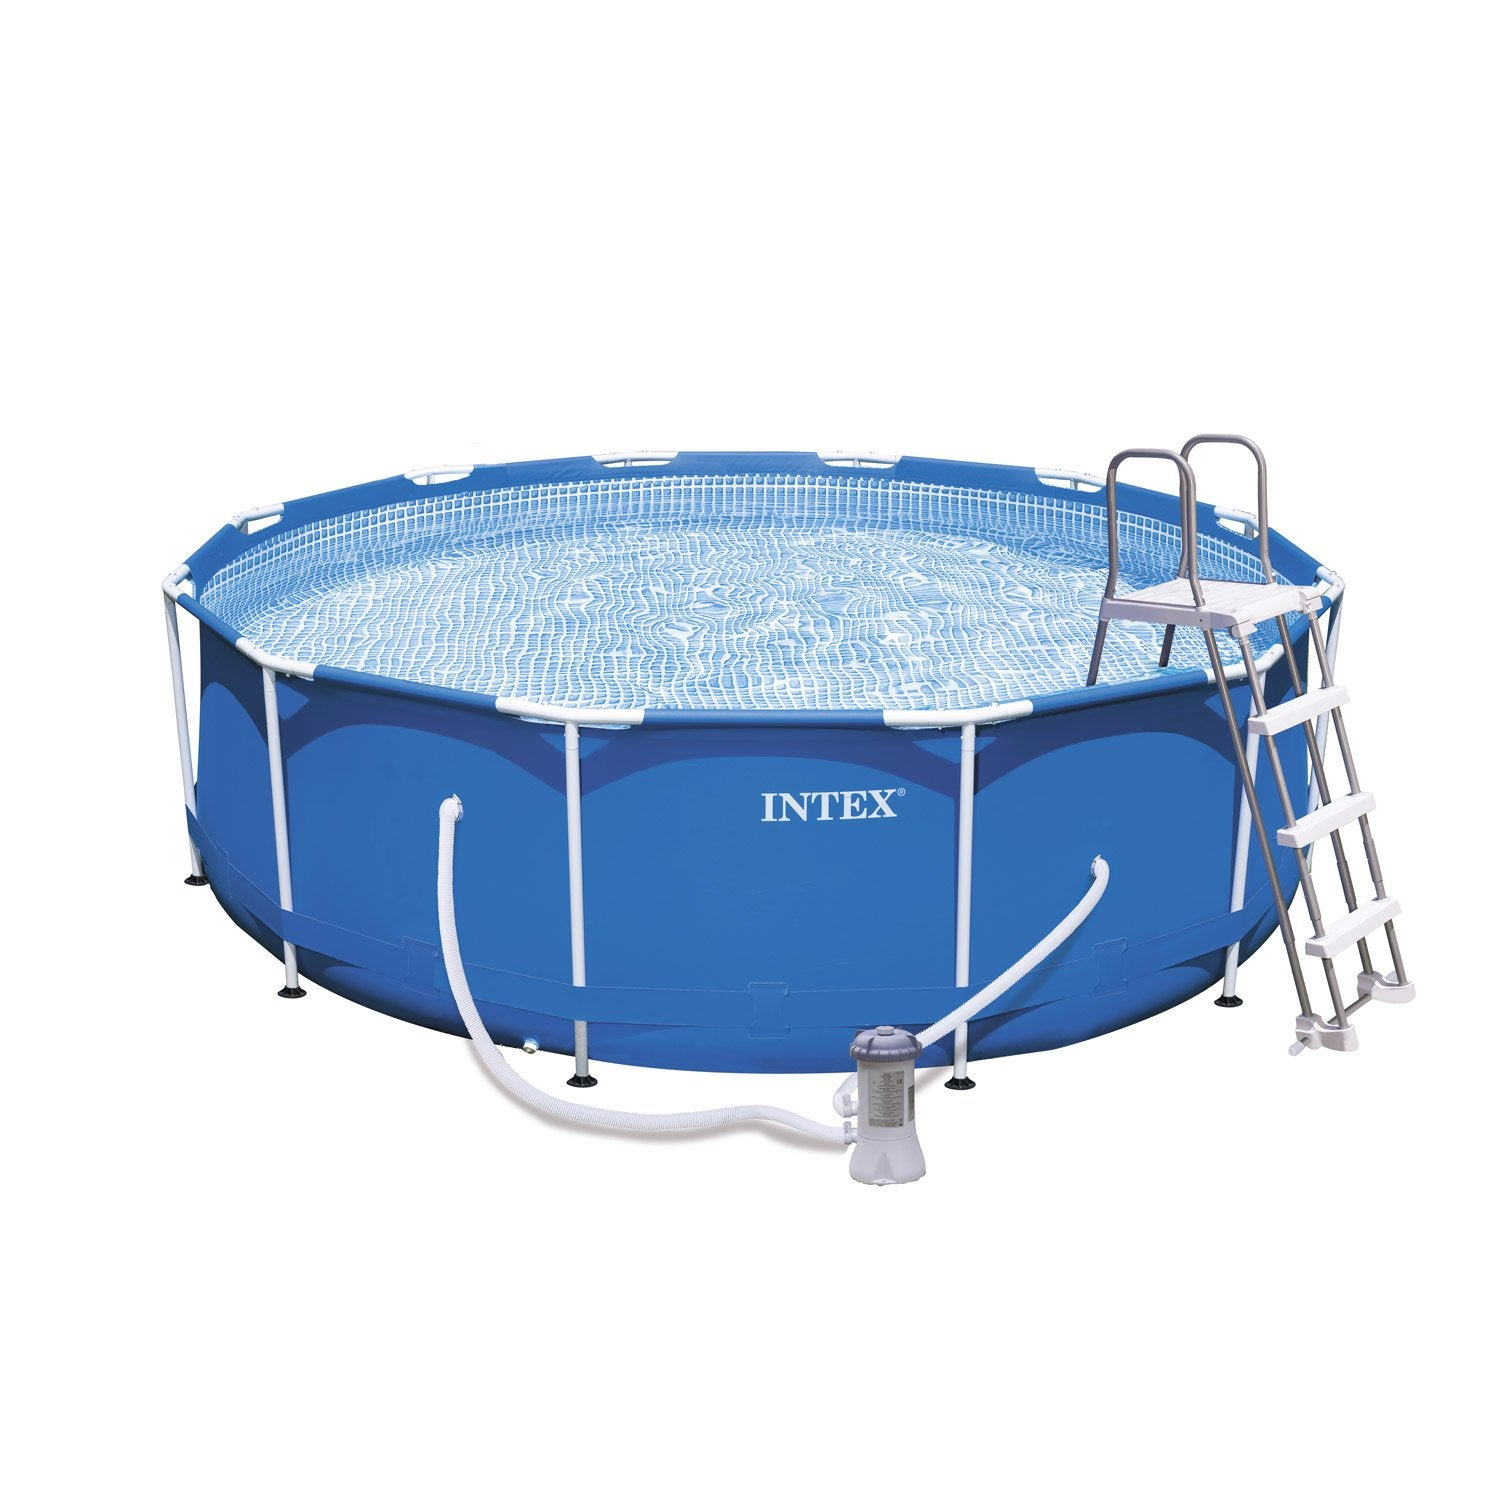 Piscine hors sol autoportante tubulaire suppression intex for Piscine hors sol 4m de diametre